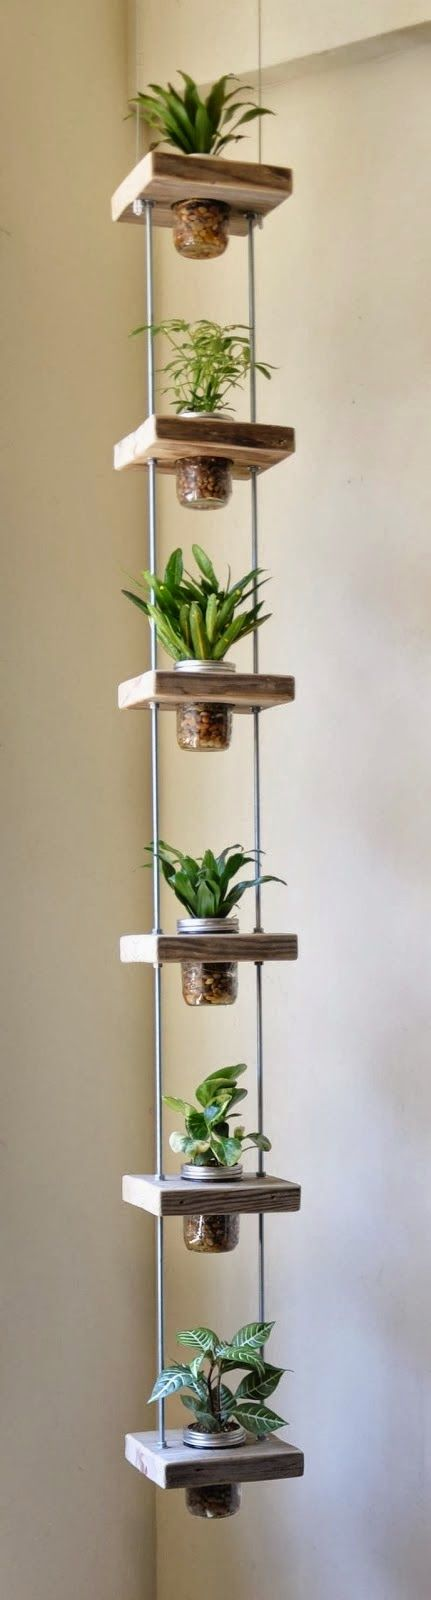 Inspiration Vertical Garden